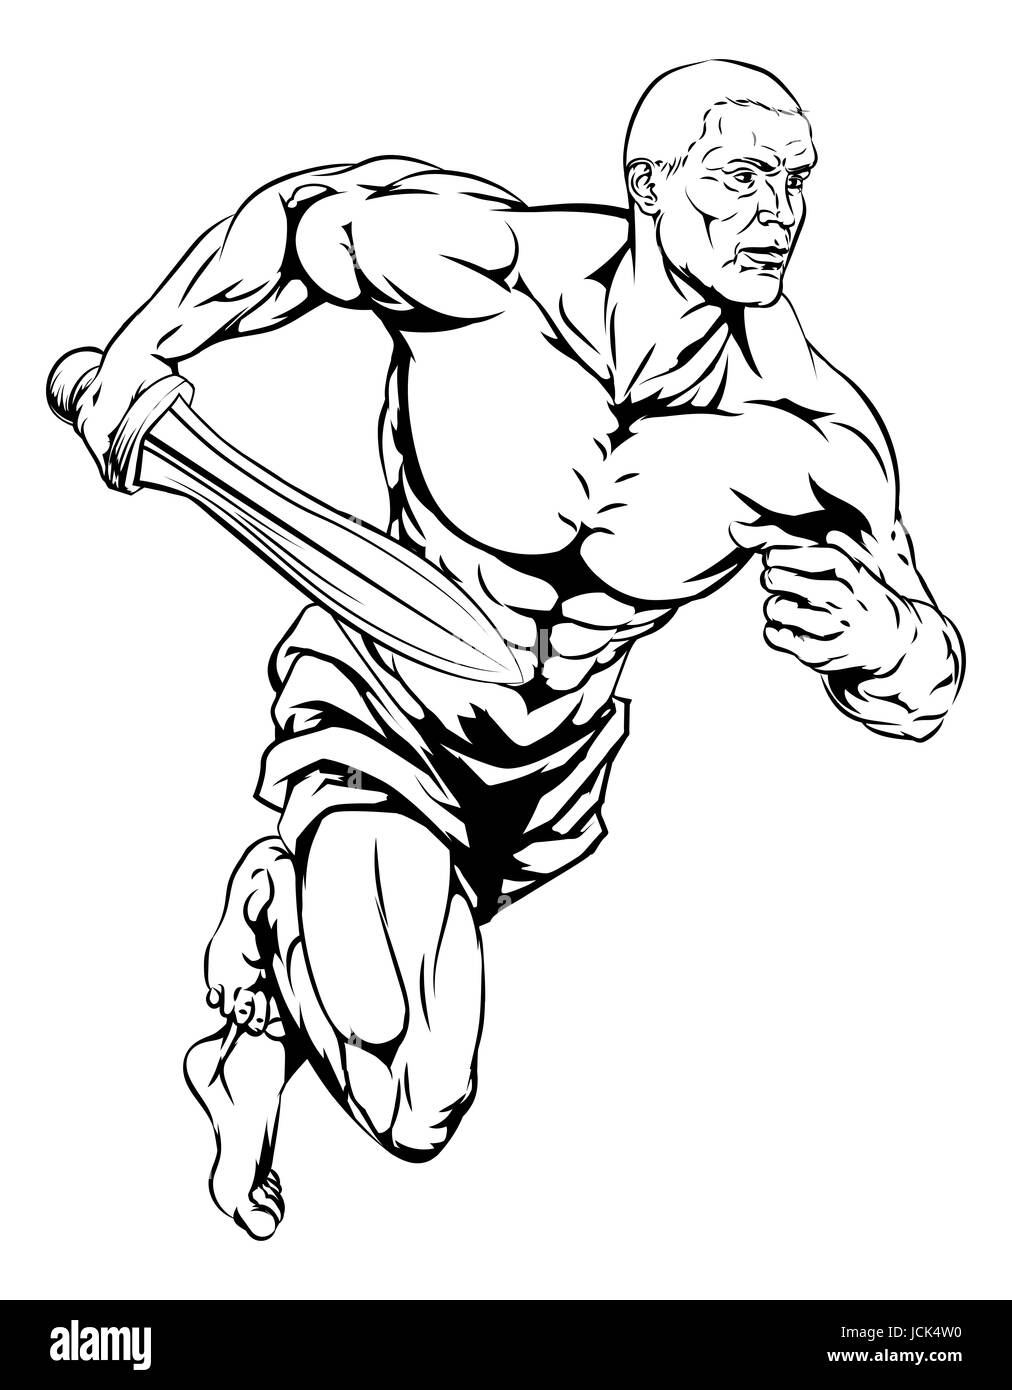 an illustration of a warrior or gladiator character or